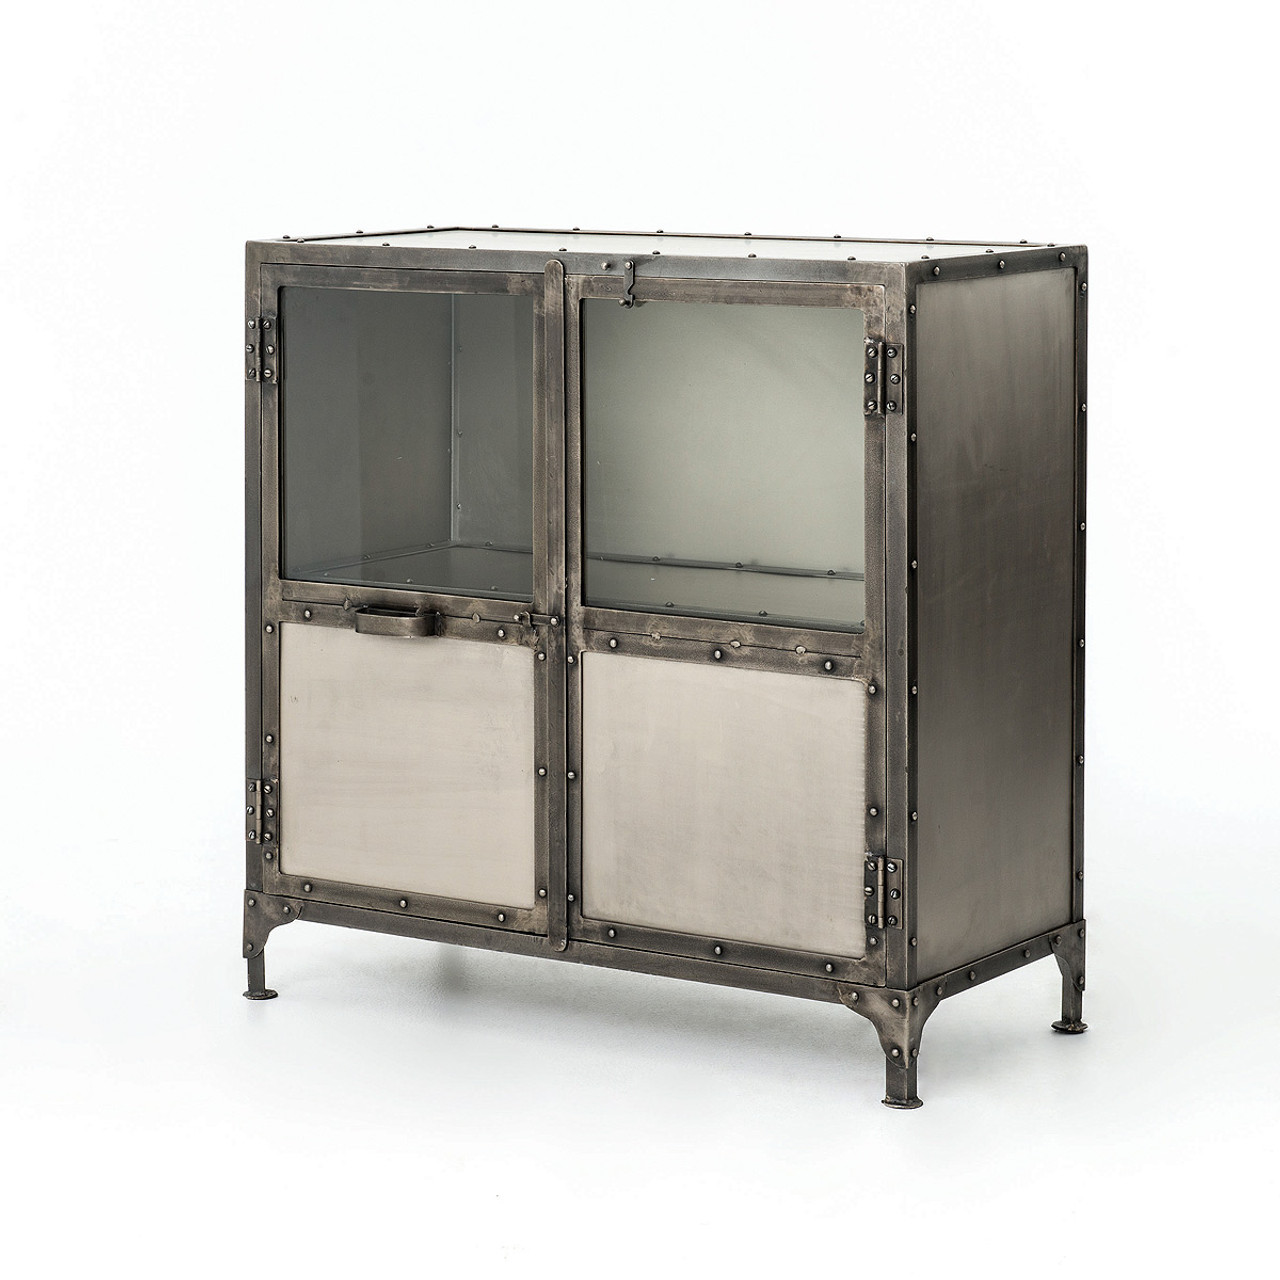 Antique Dining Room Tables For Sale Antiuqed Nickel Industrial Small Sideboard Zin Home